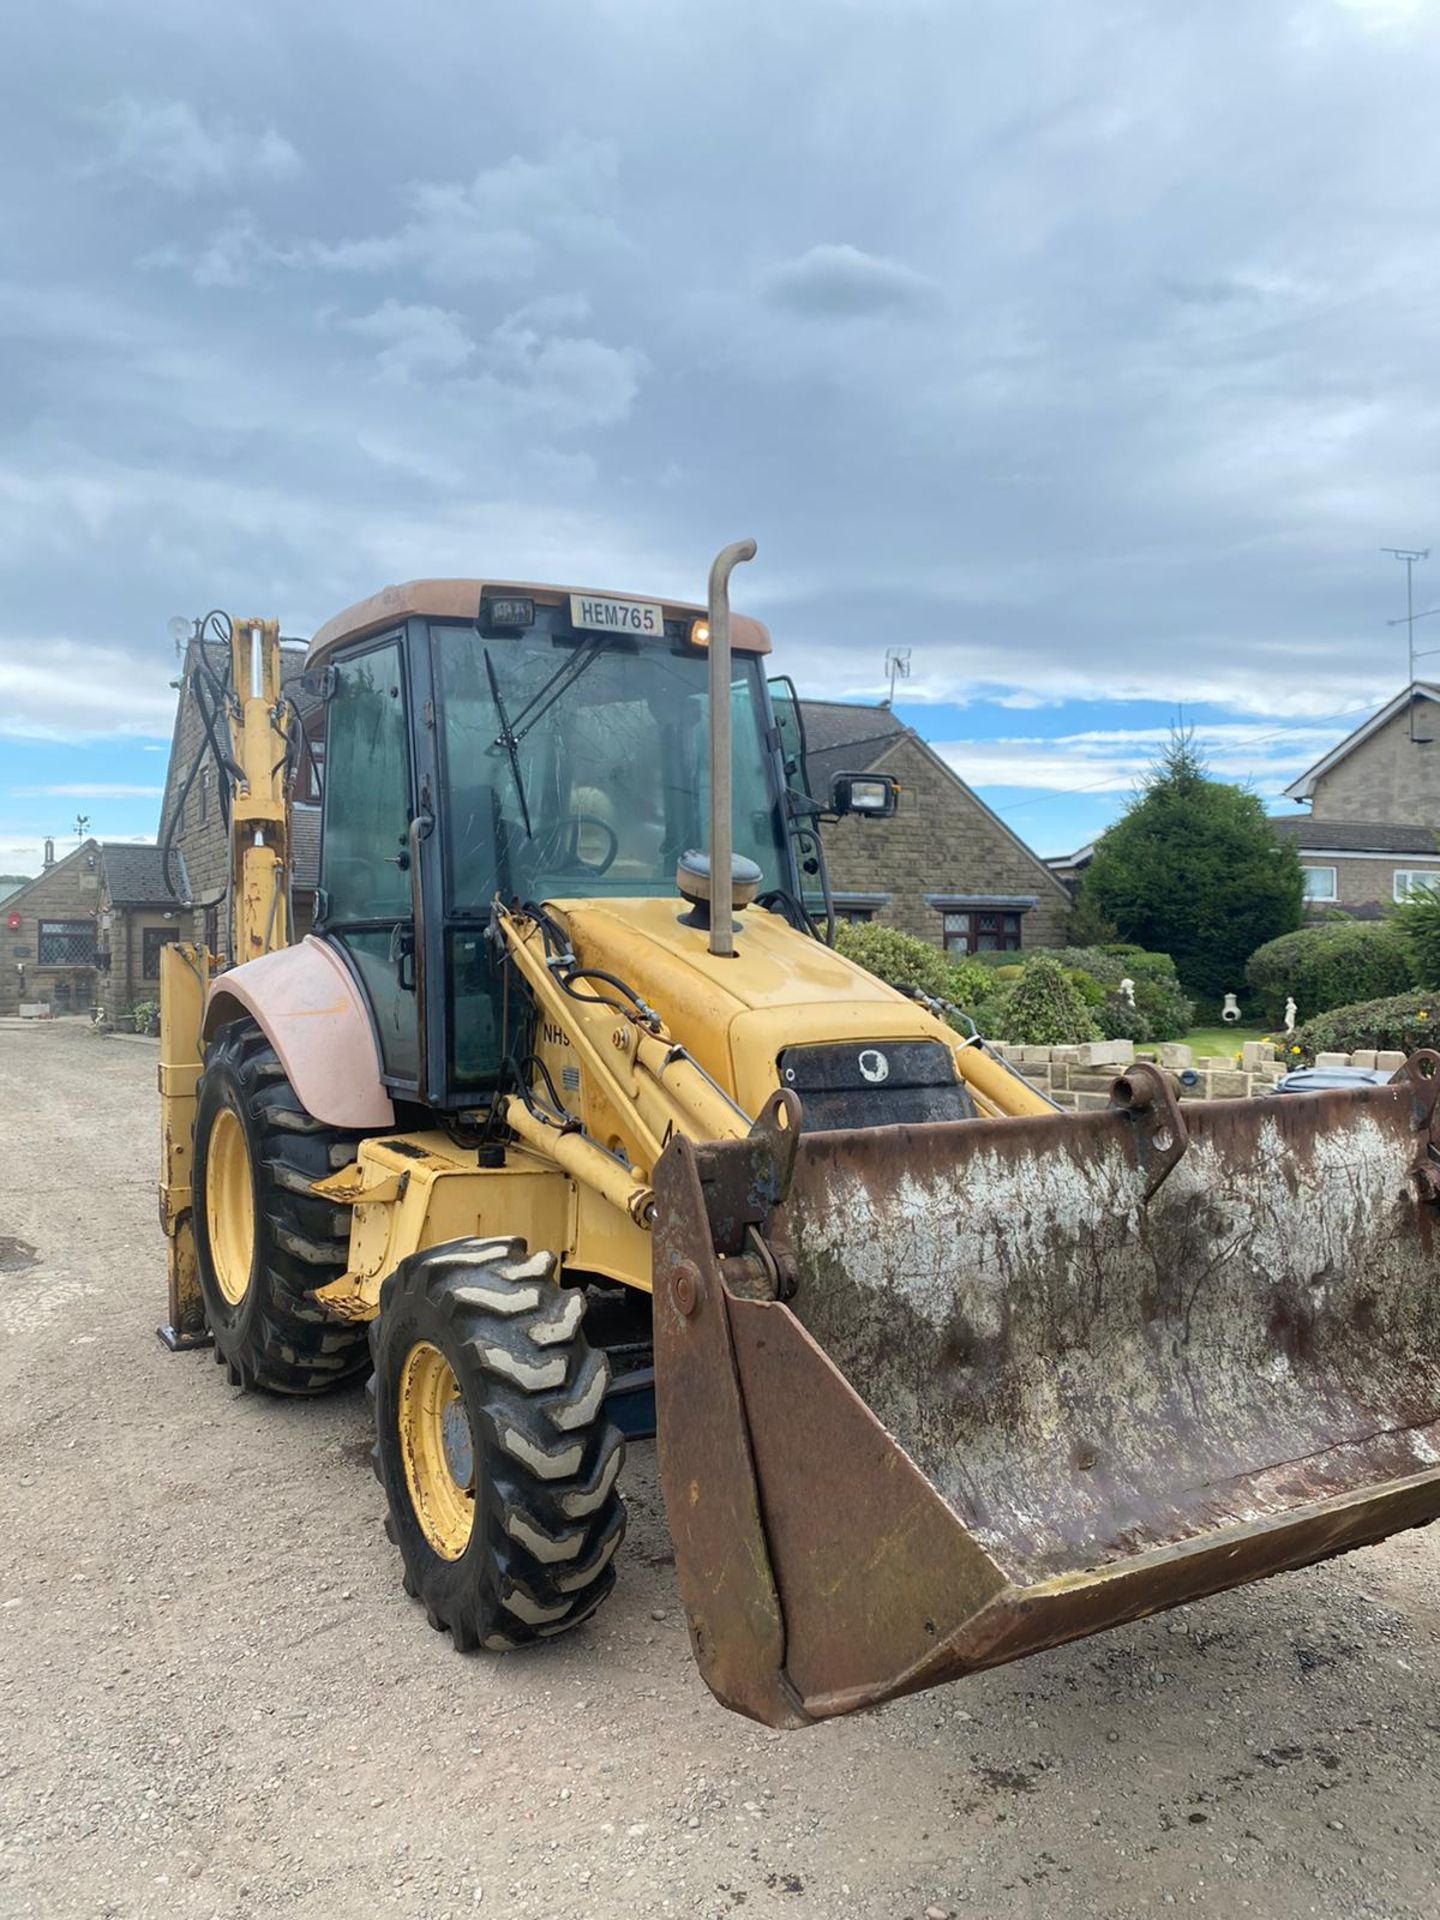 NEWHOLLAND NH95 DIGGER LOADER, 4 WHEEL DRIVE, 4-IN-1 BUCKET, EXTRA DIG, RUNS, WORKS AND DIGS - Image 6 of 8